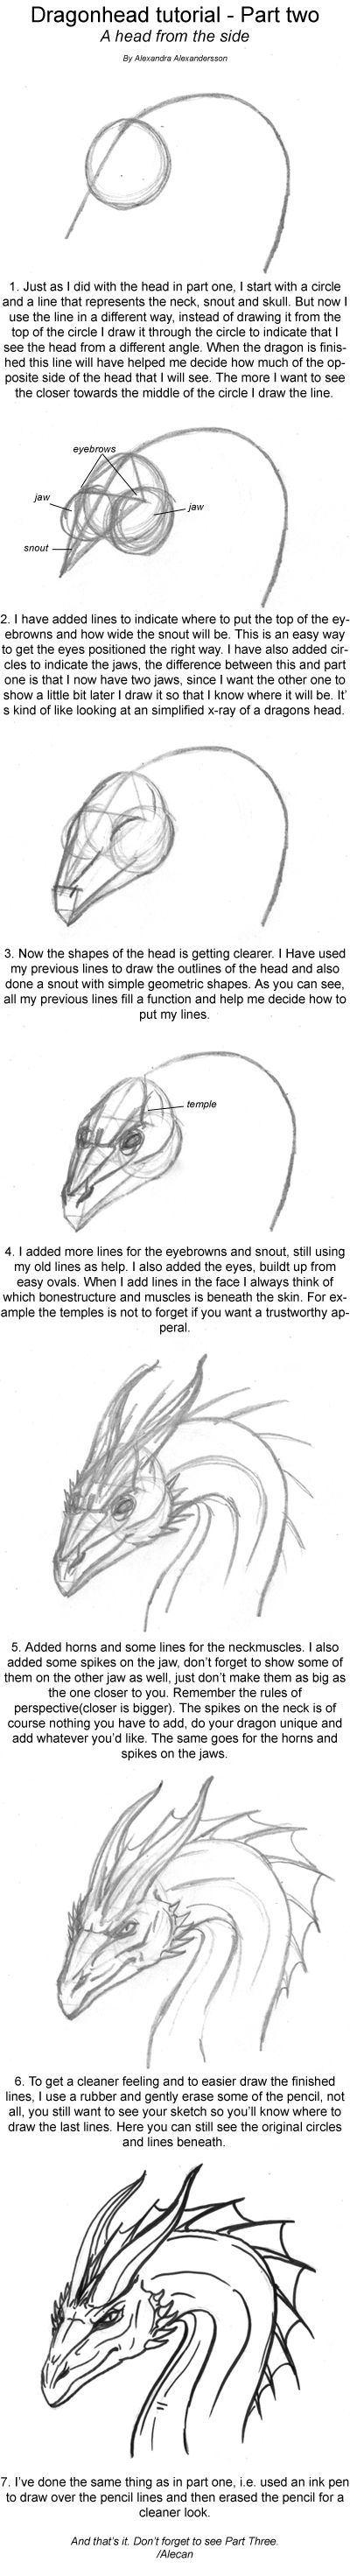 Dragonhead Tutorial part two by alecan on DeviantArt